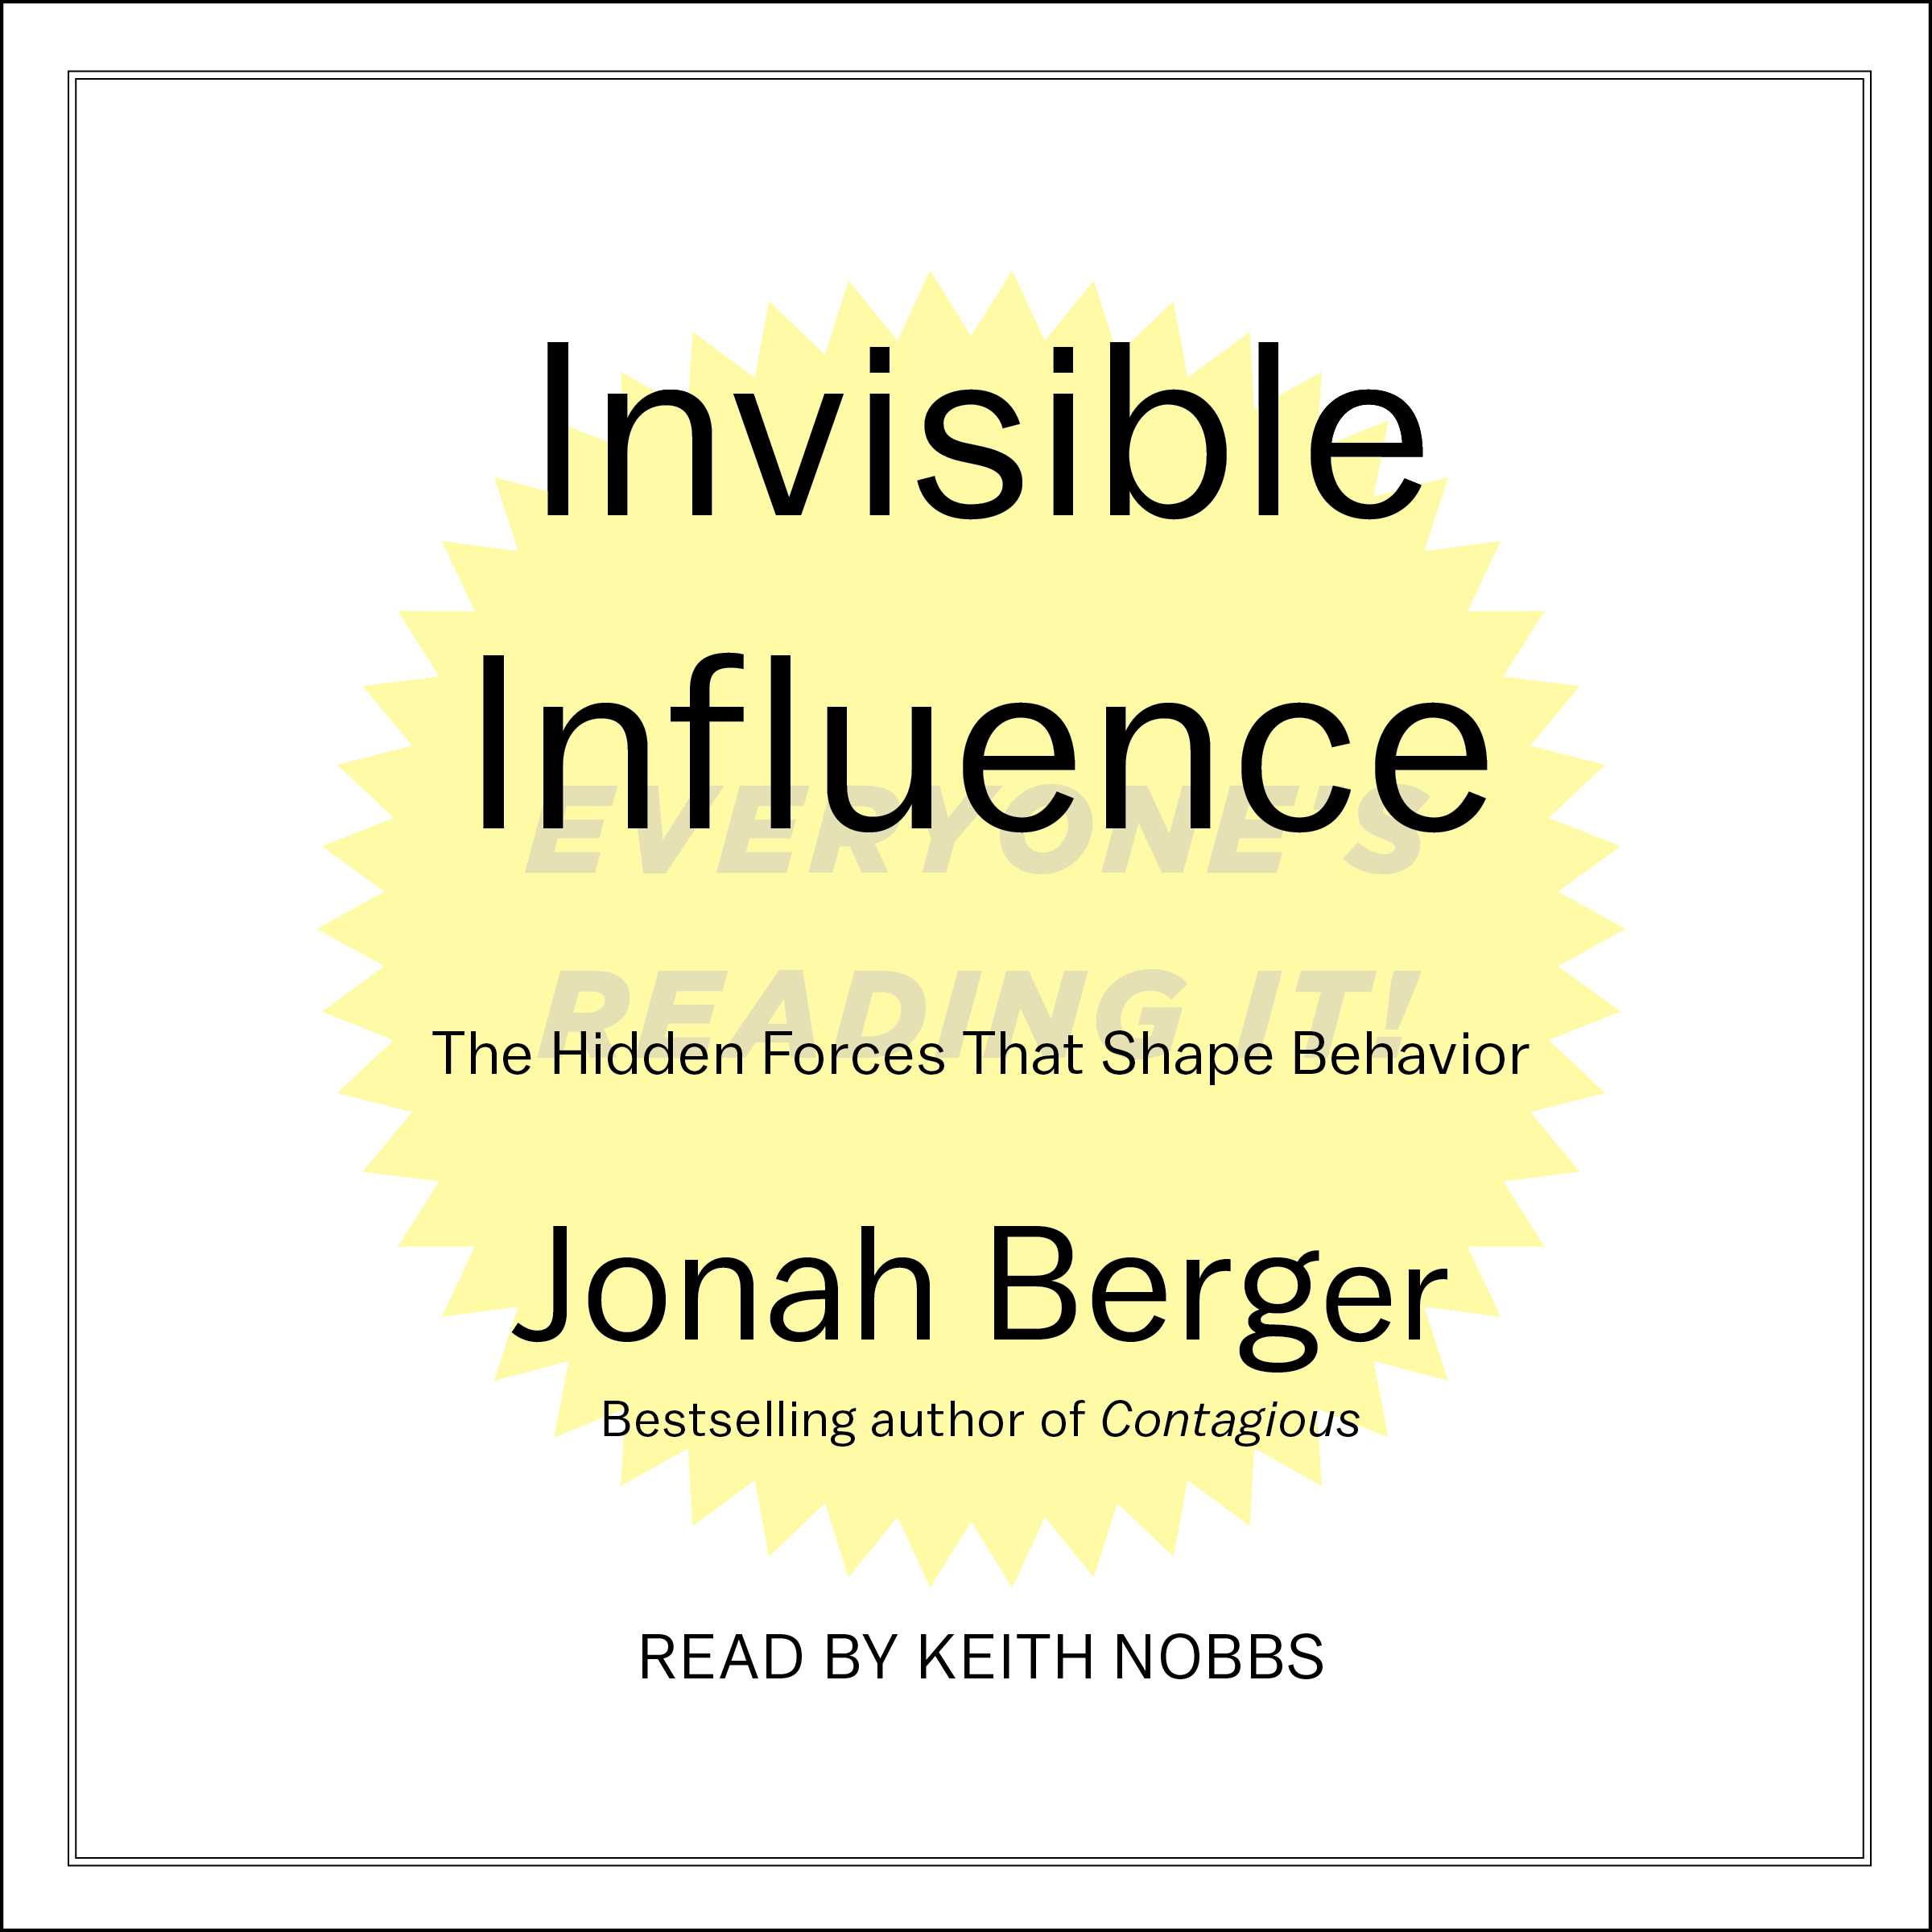 Invisible influence 9781508211426 hr